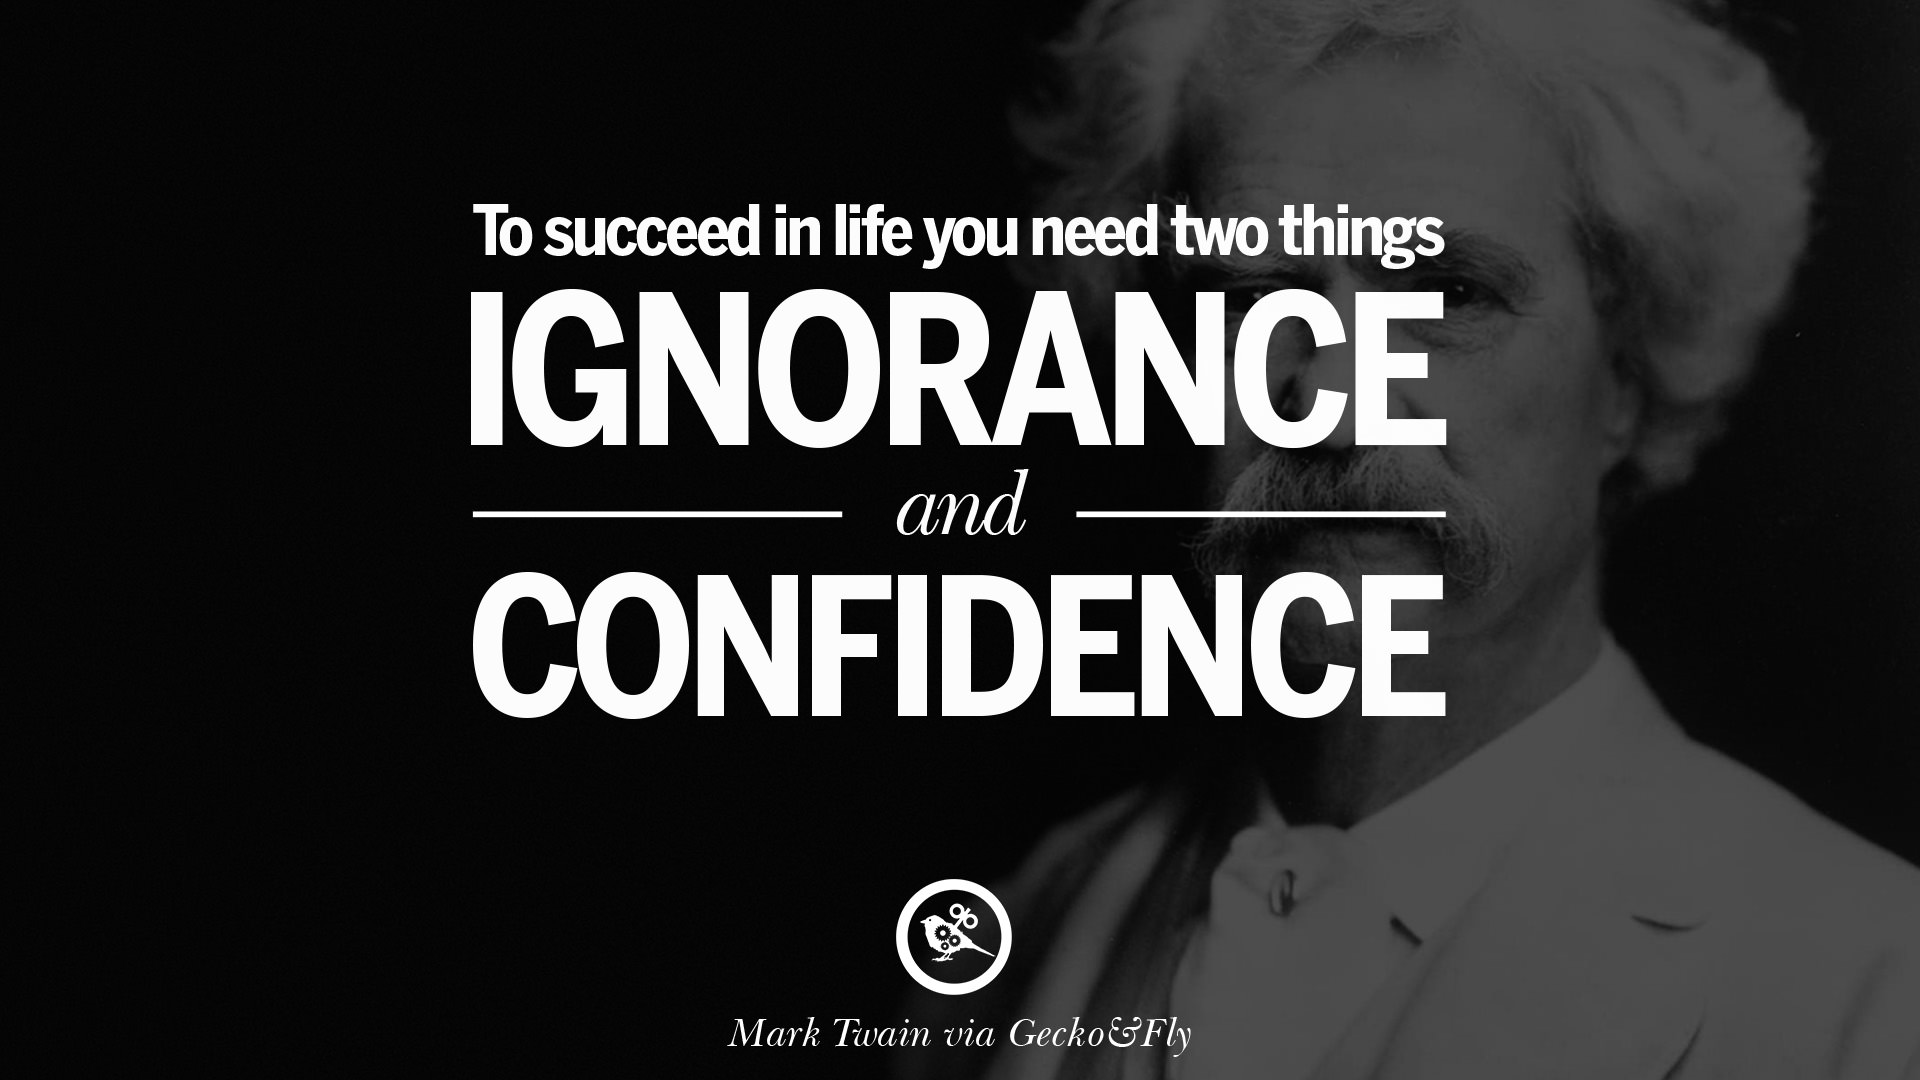 Wise Life Quotes Magnificent 18 Wise Quotesmark Twain On Wisdom Human Nature Life And